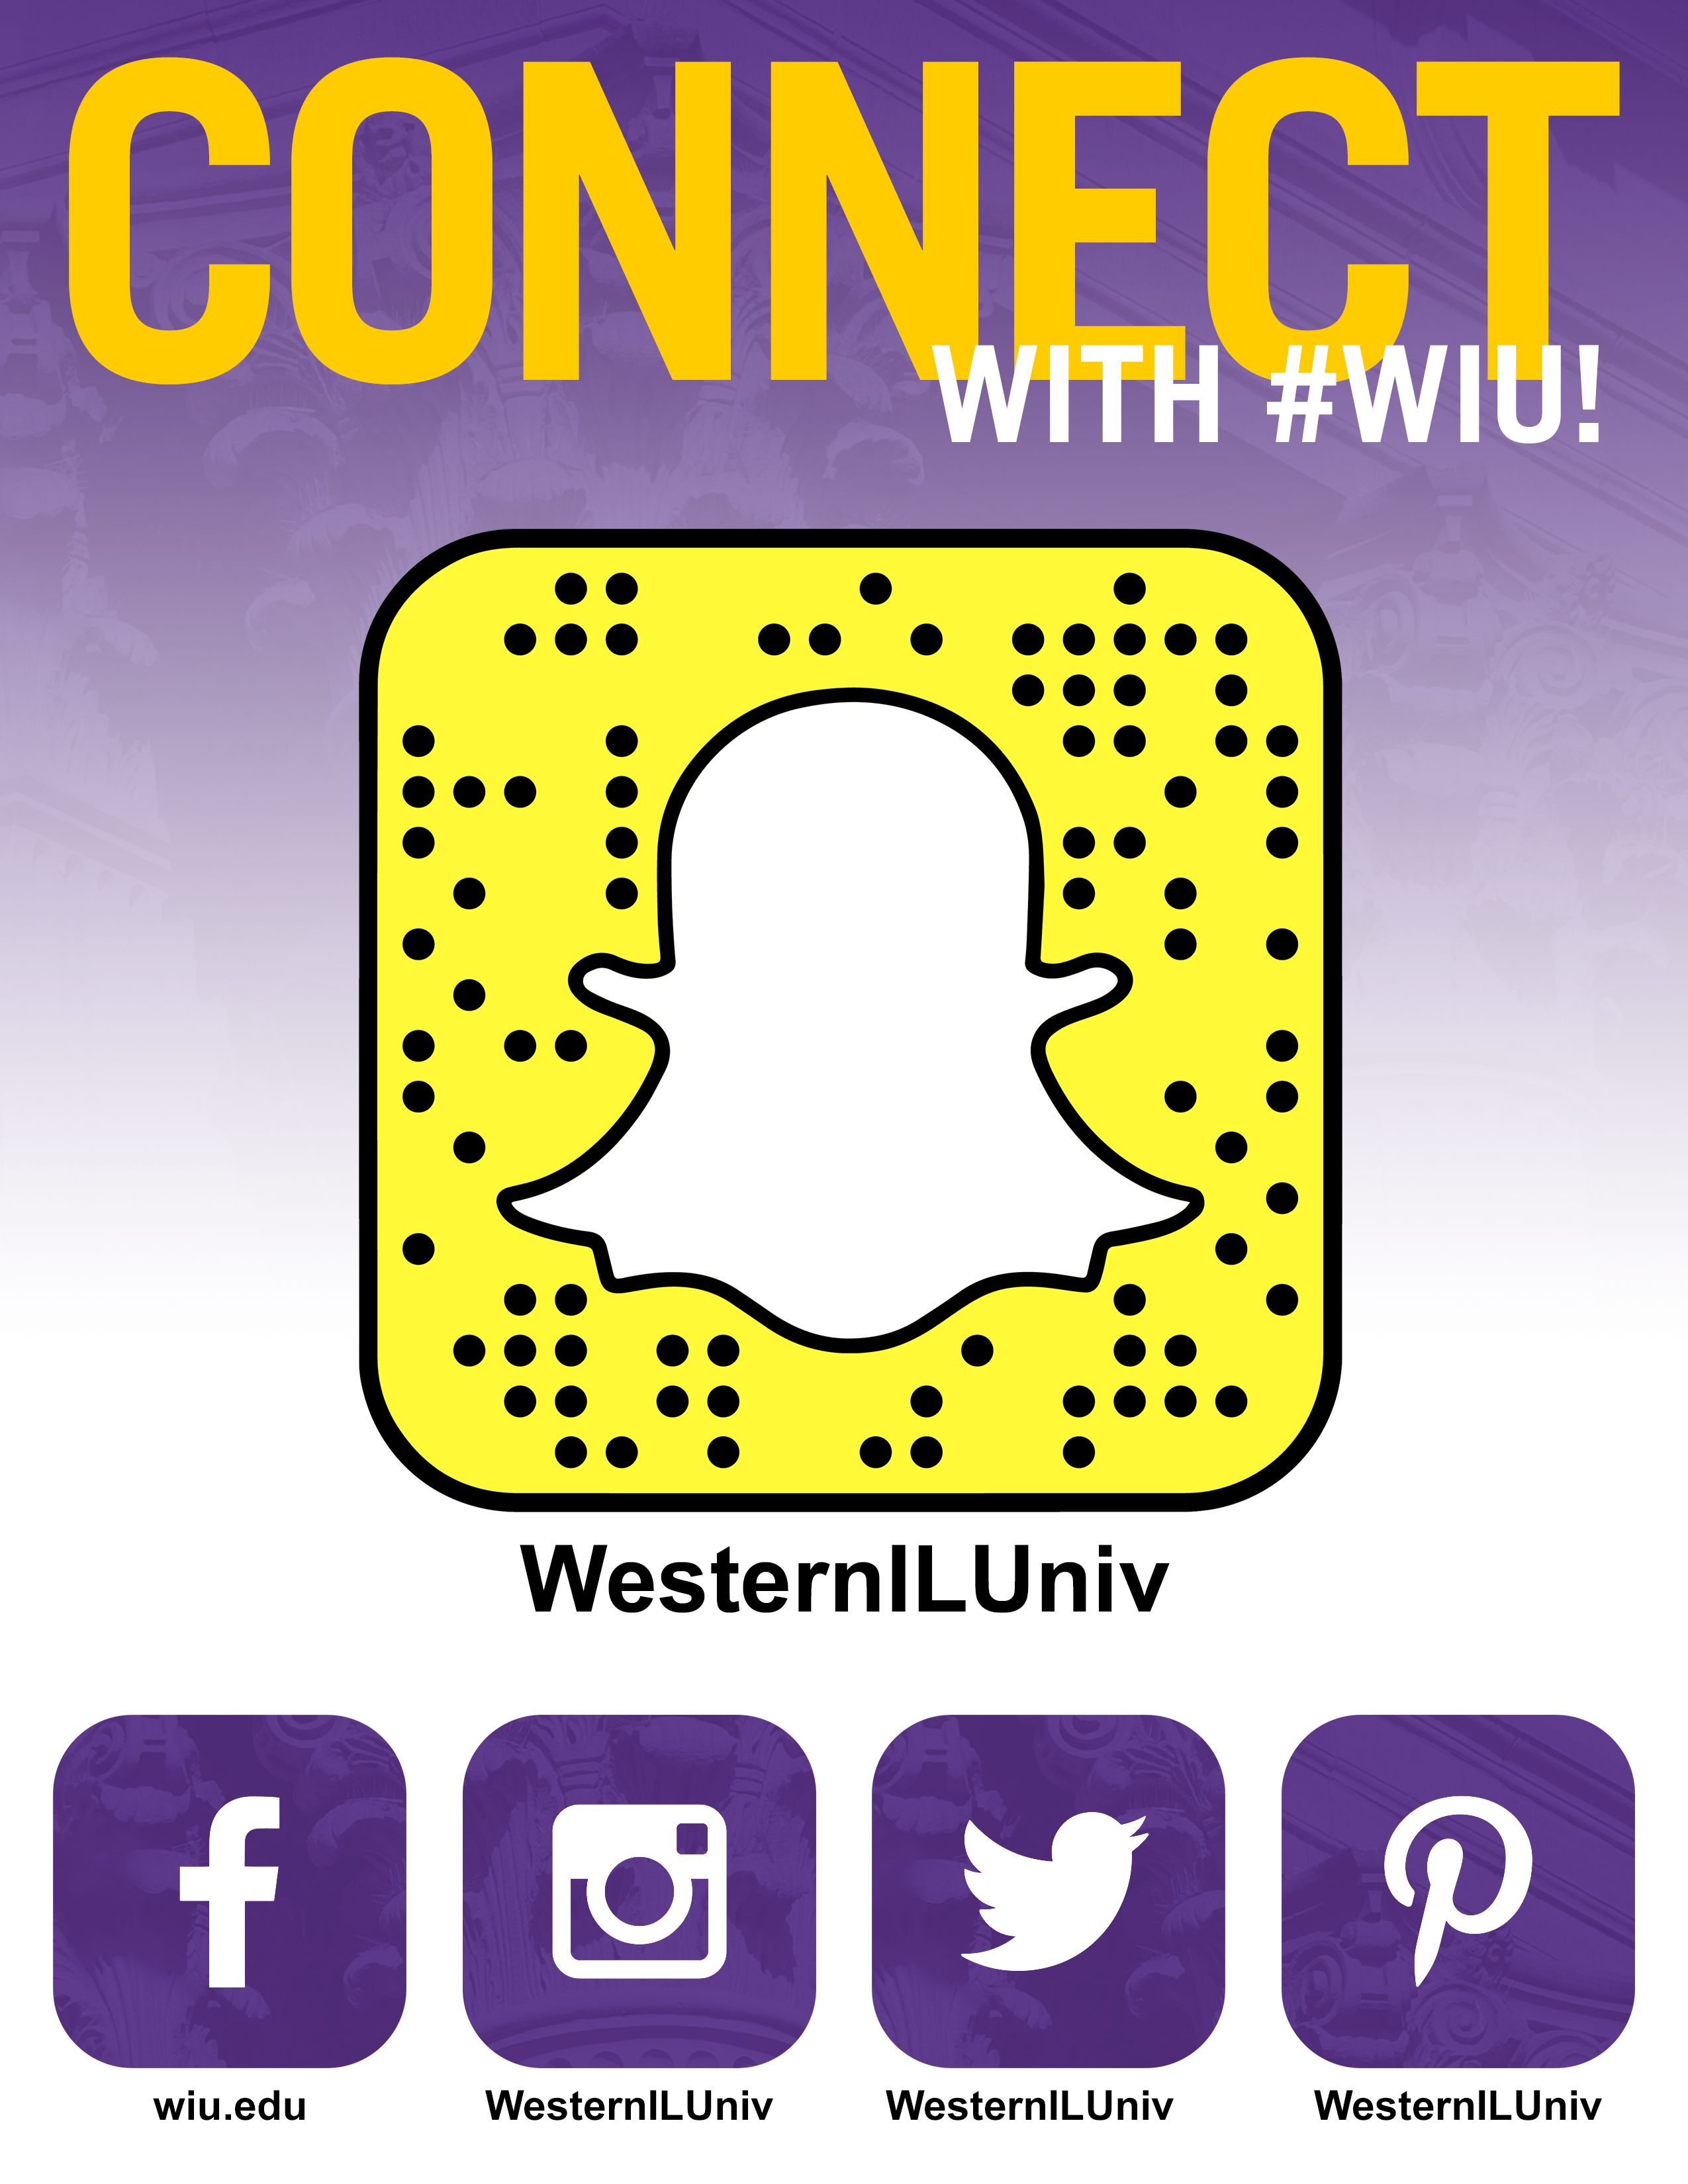 Western Illinois University Social Media | Macomb, IL | About ... on wiu quad cities campus, wiu moline campus, wiu campus map, wiu campus recreation,